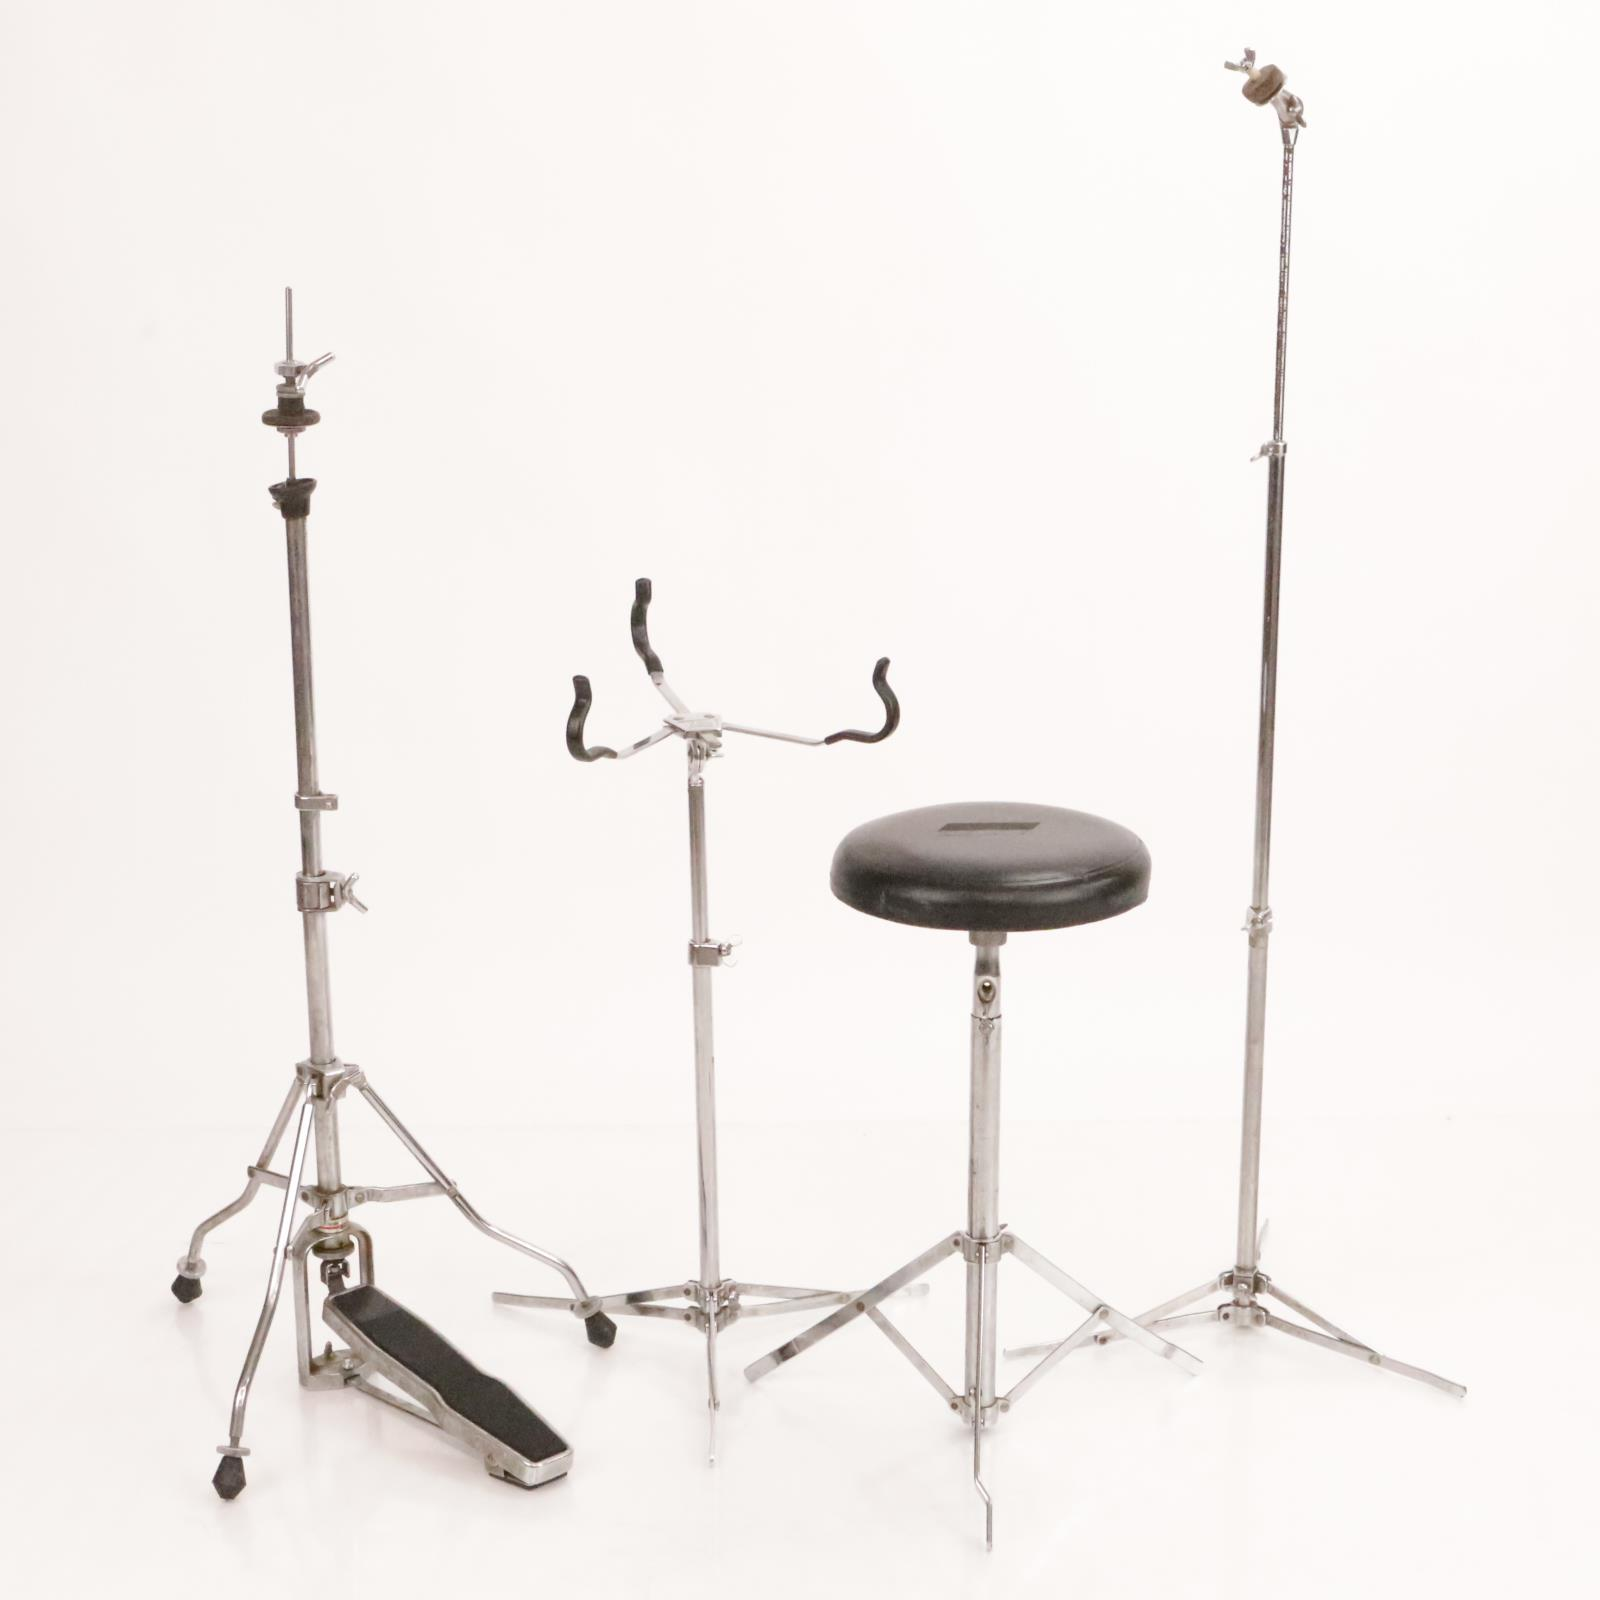 1950's Vintage Ludwig Drum Stands Hardware Snare Hi-Hat Cymbal Throne #36490